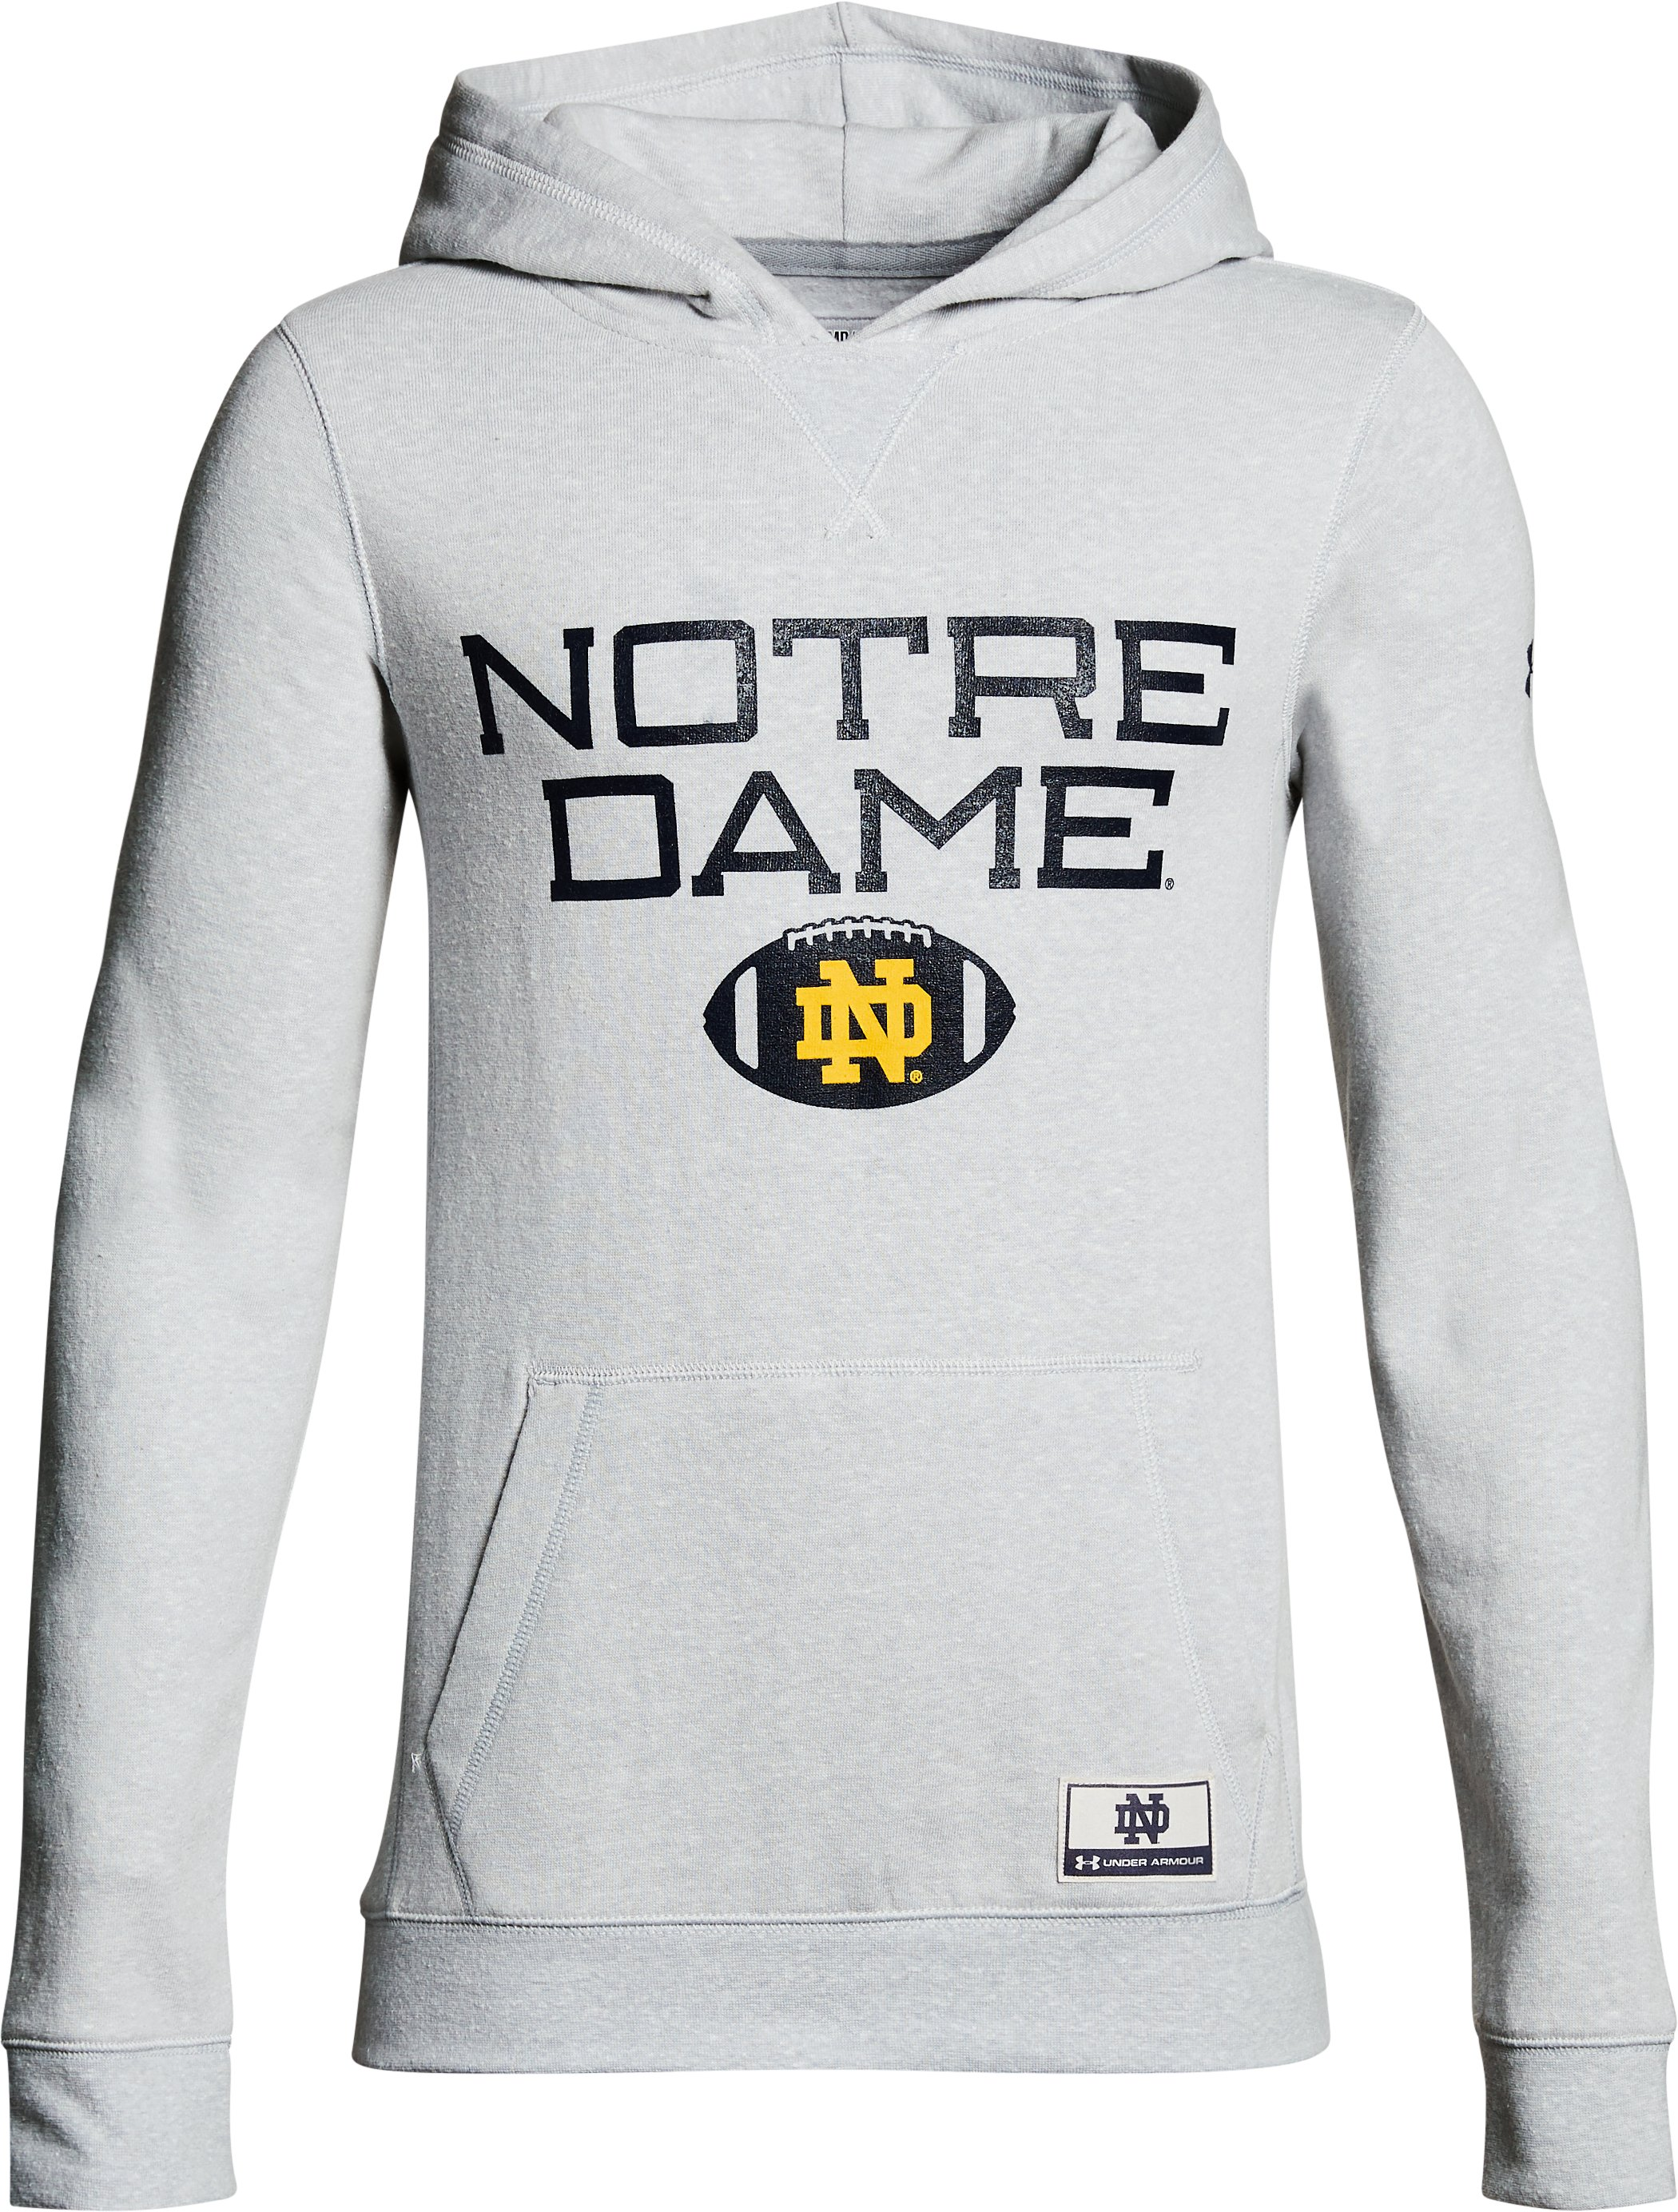 Boy's Notre Dame Iconic Hoodie, Gray